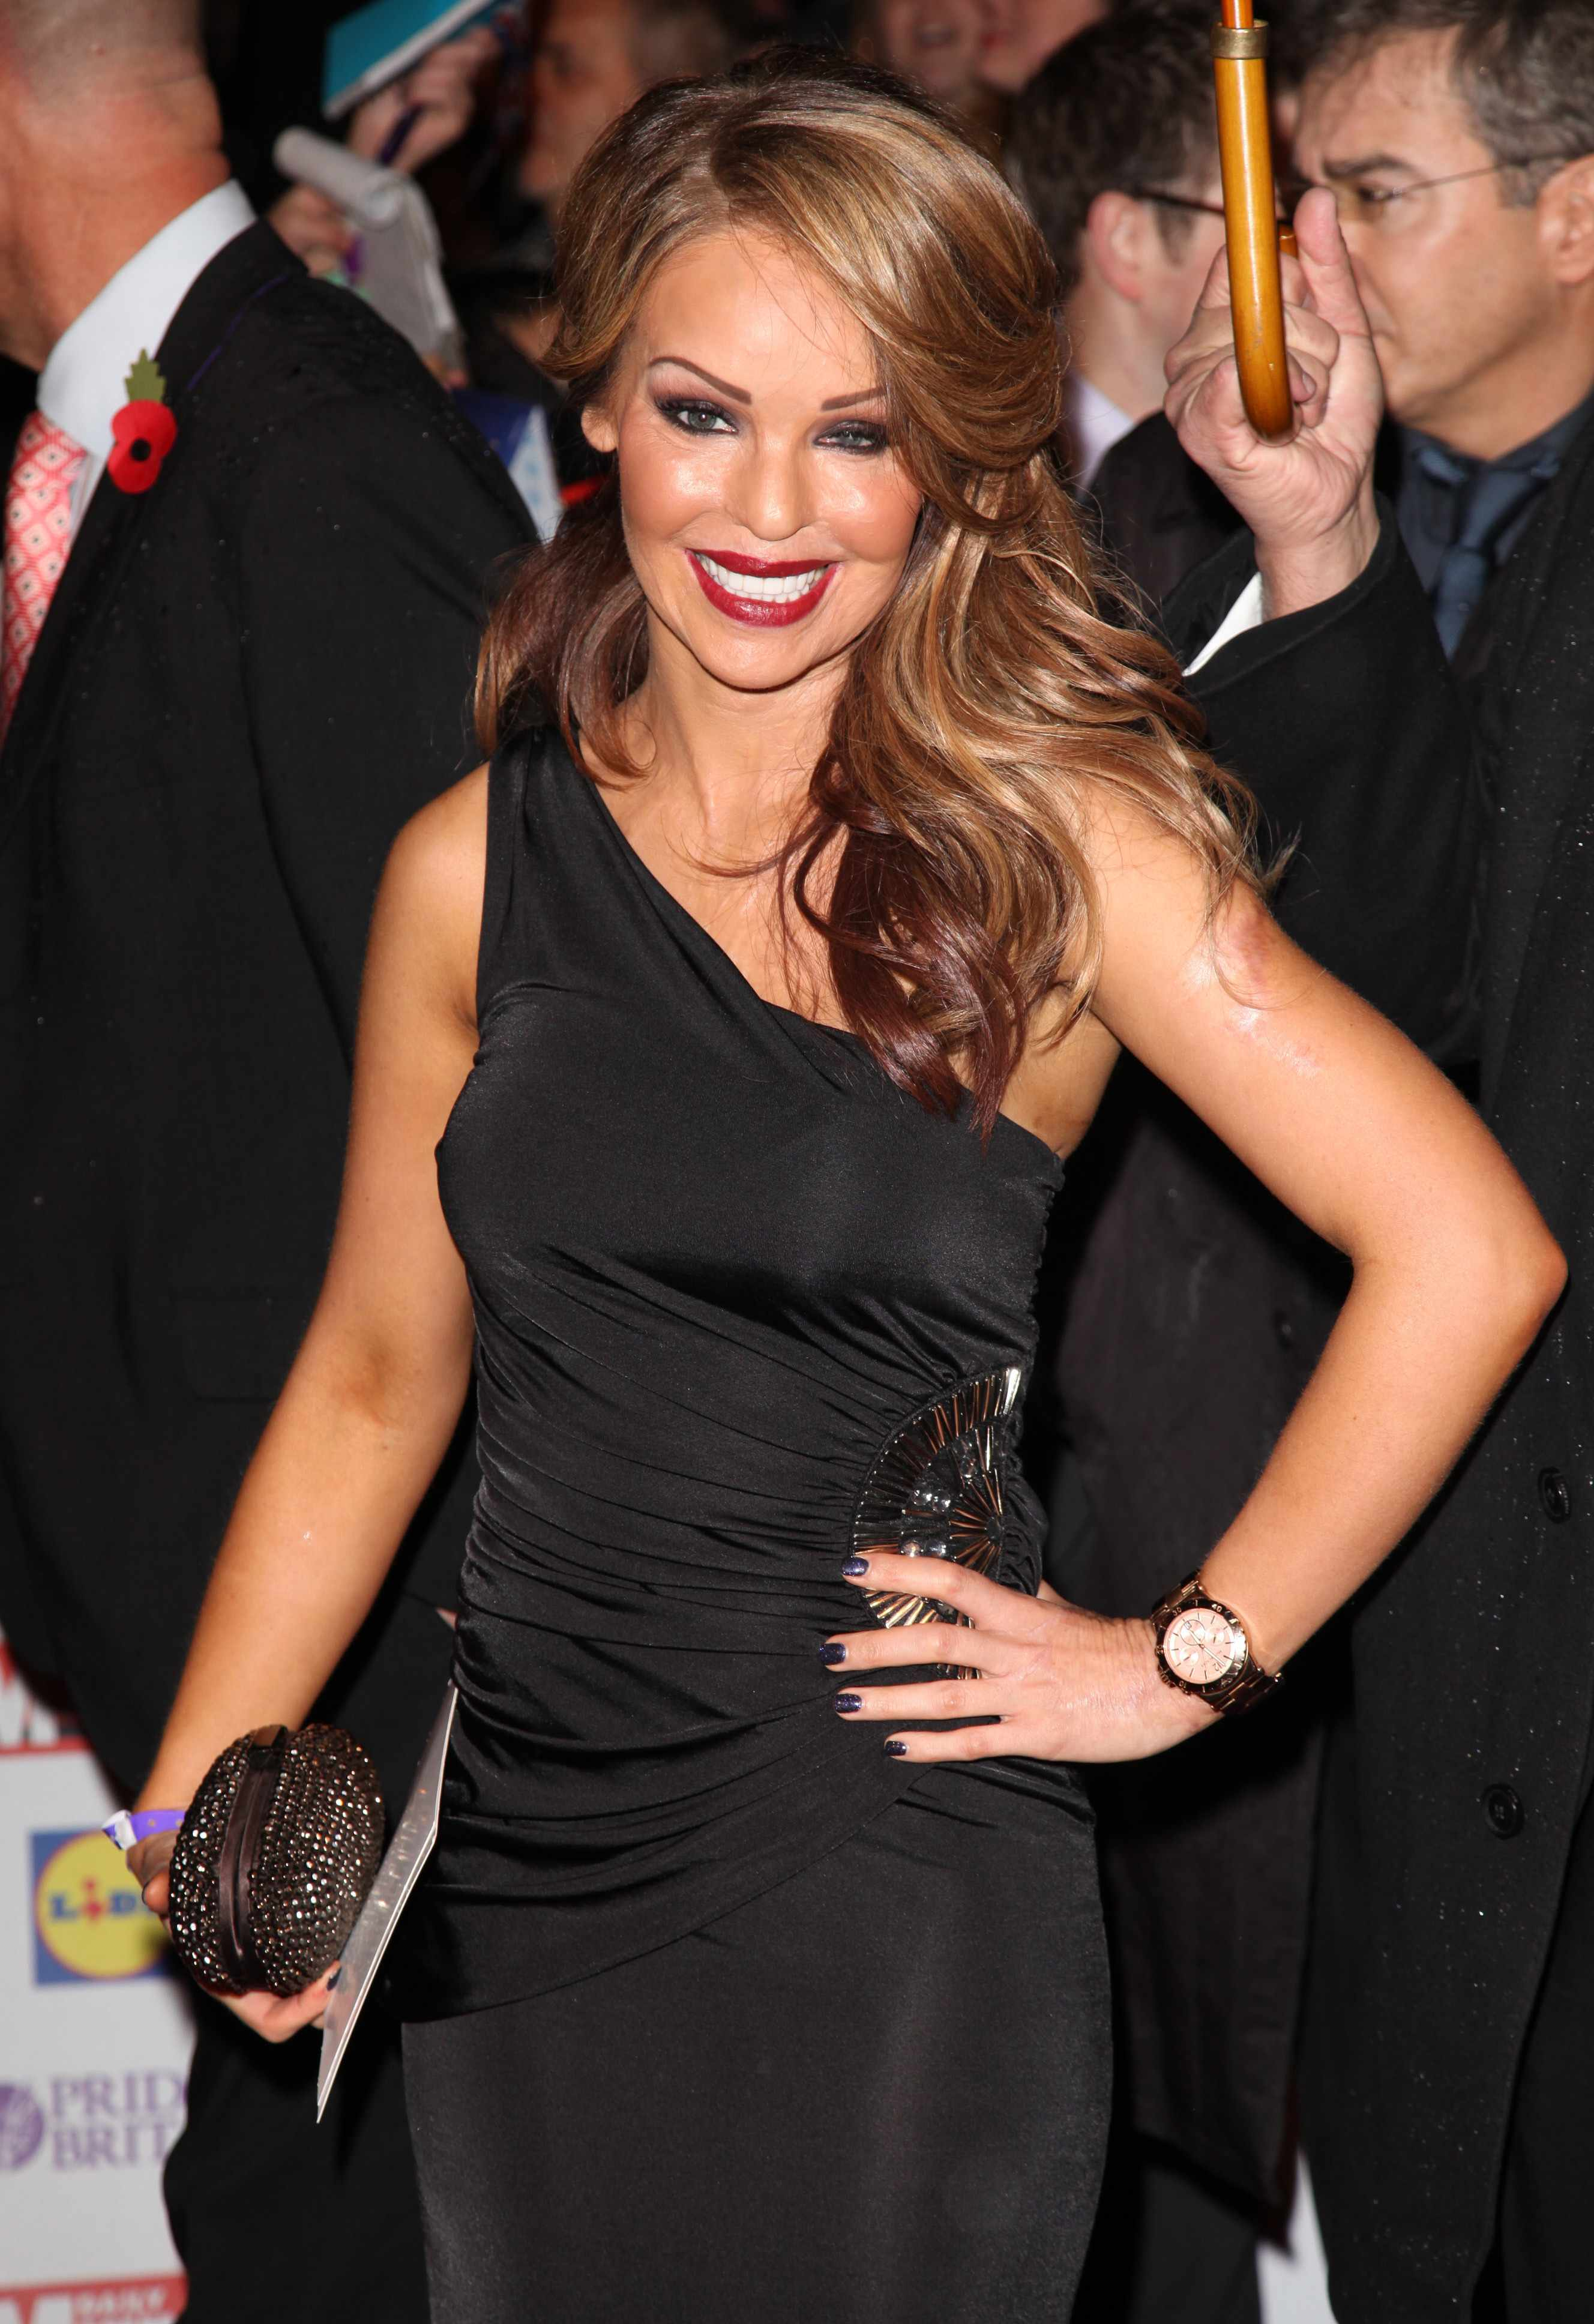 katie-piper-is-pregnant_49828